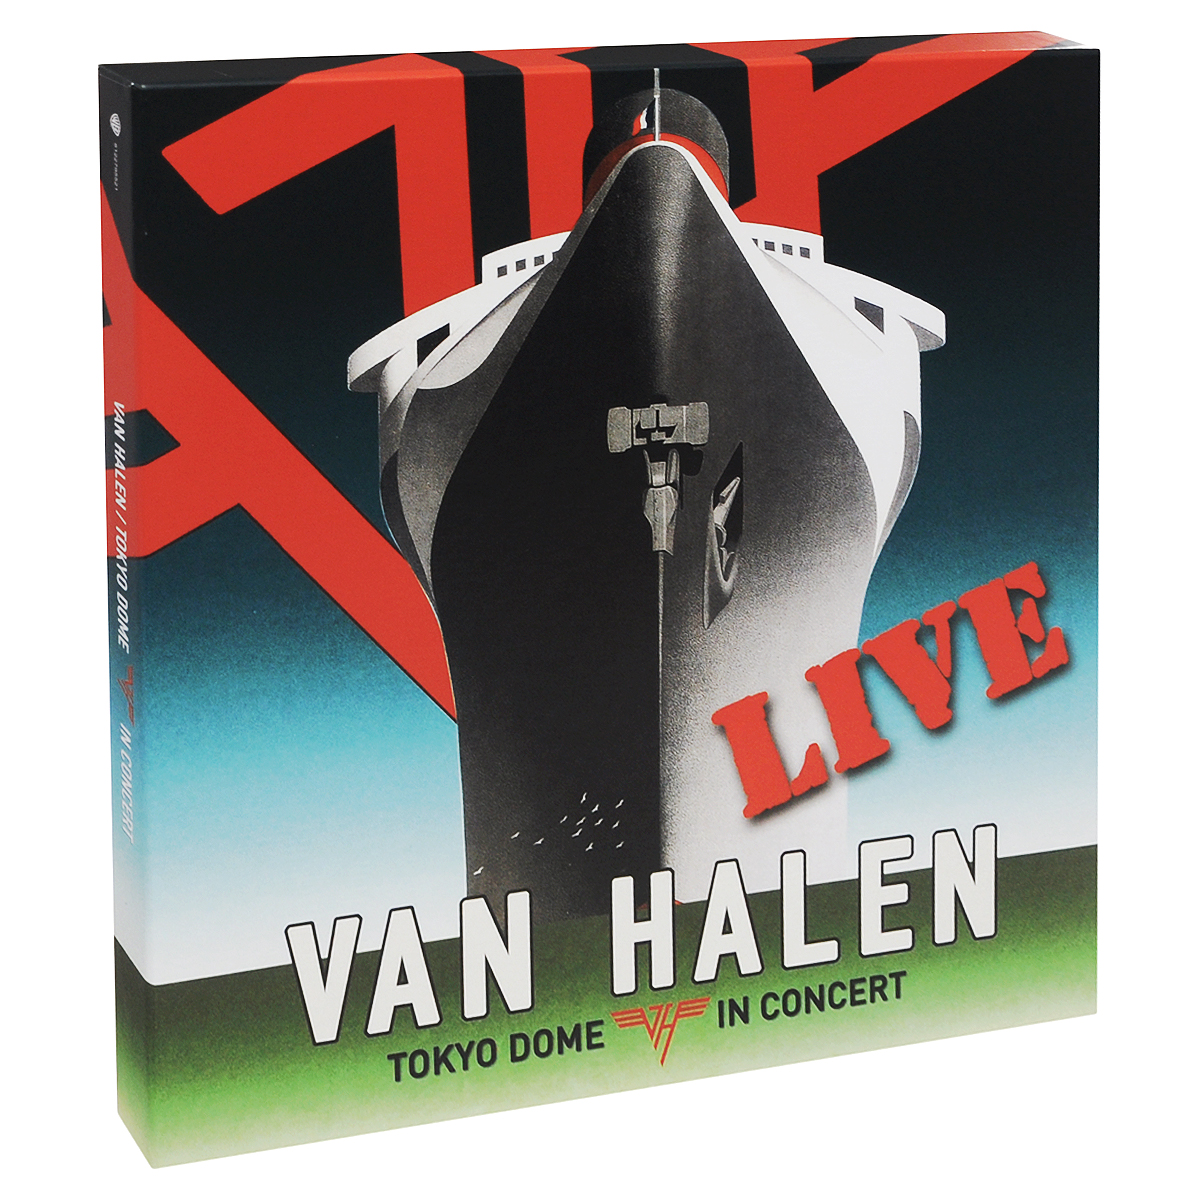 Van Halen Van Halen. Tokyo Dome In Concert. Live (4 LP) 2016 new short bobo haircuts wigs silver white strike the blood date a live tobiichi origami touhou project youmu konpaku